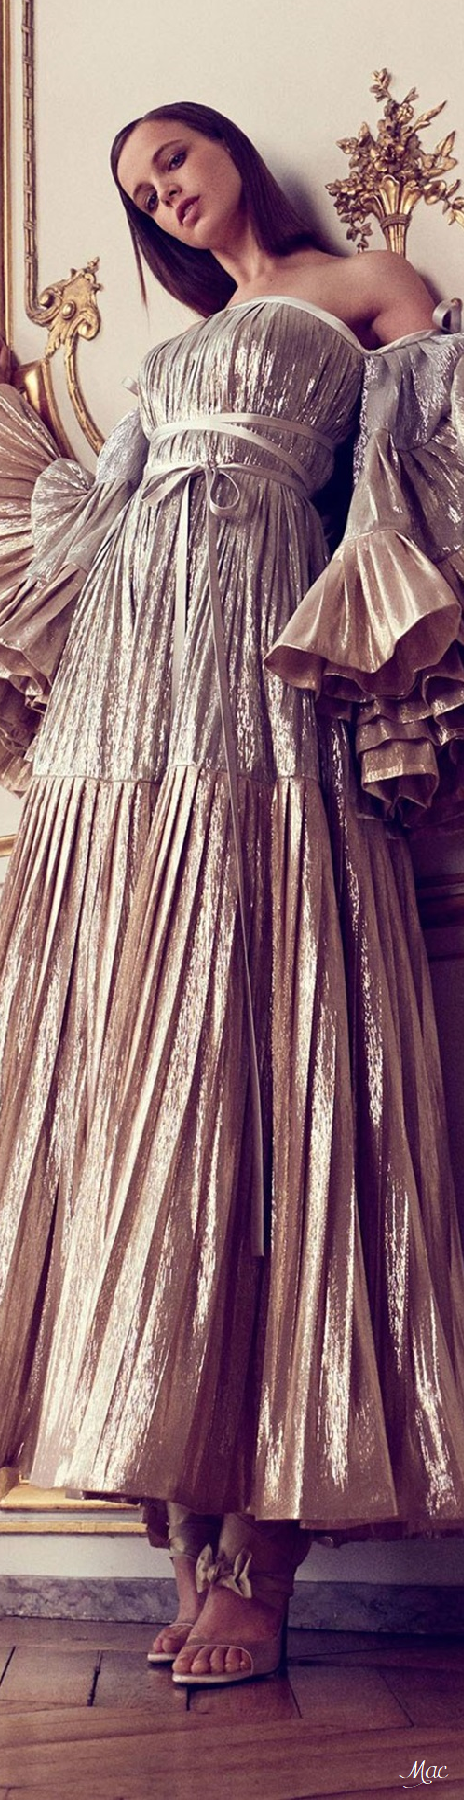 Fall 2017 Haute Couture Alexis Mabille